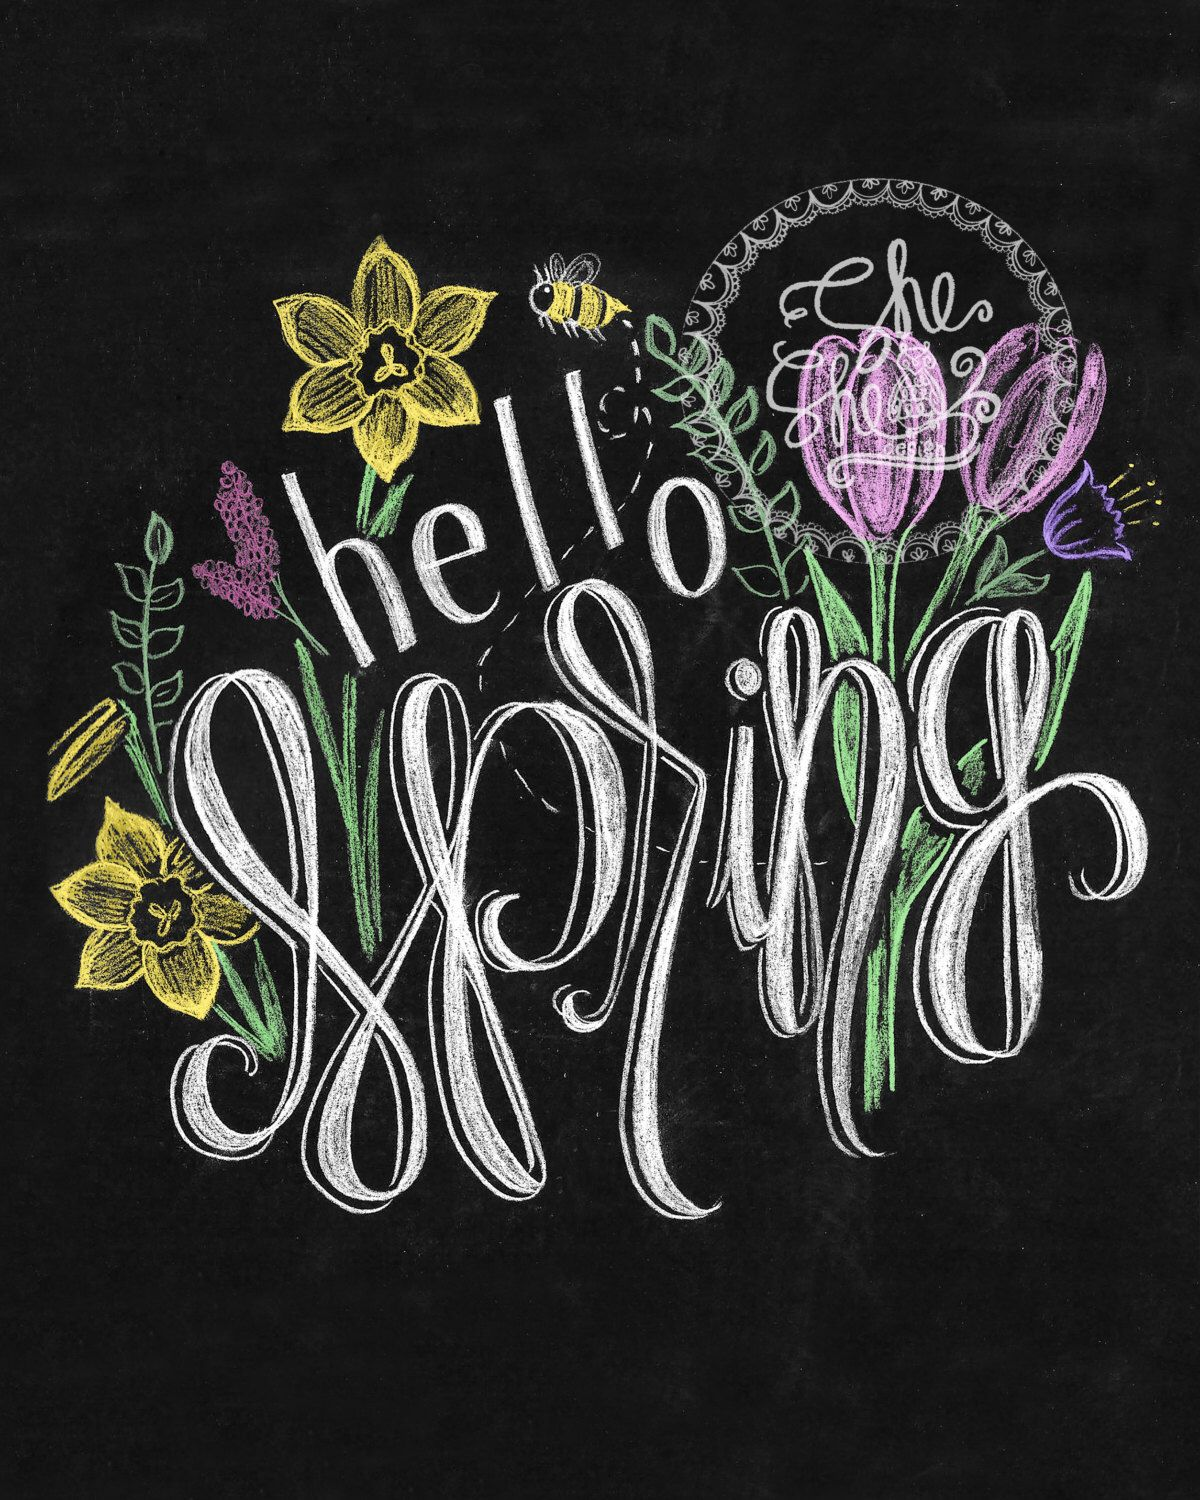 Chalkboard Designs A Set Of Chalkboard Style Typographic Summer Designs Hand Drawn